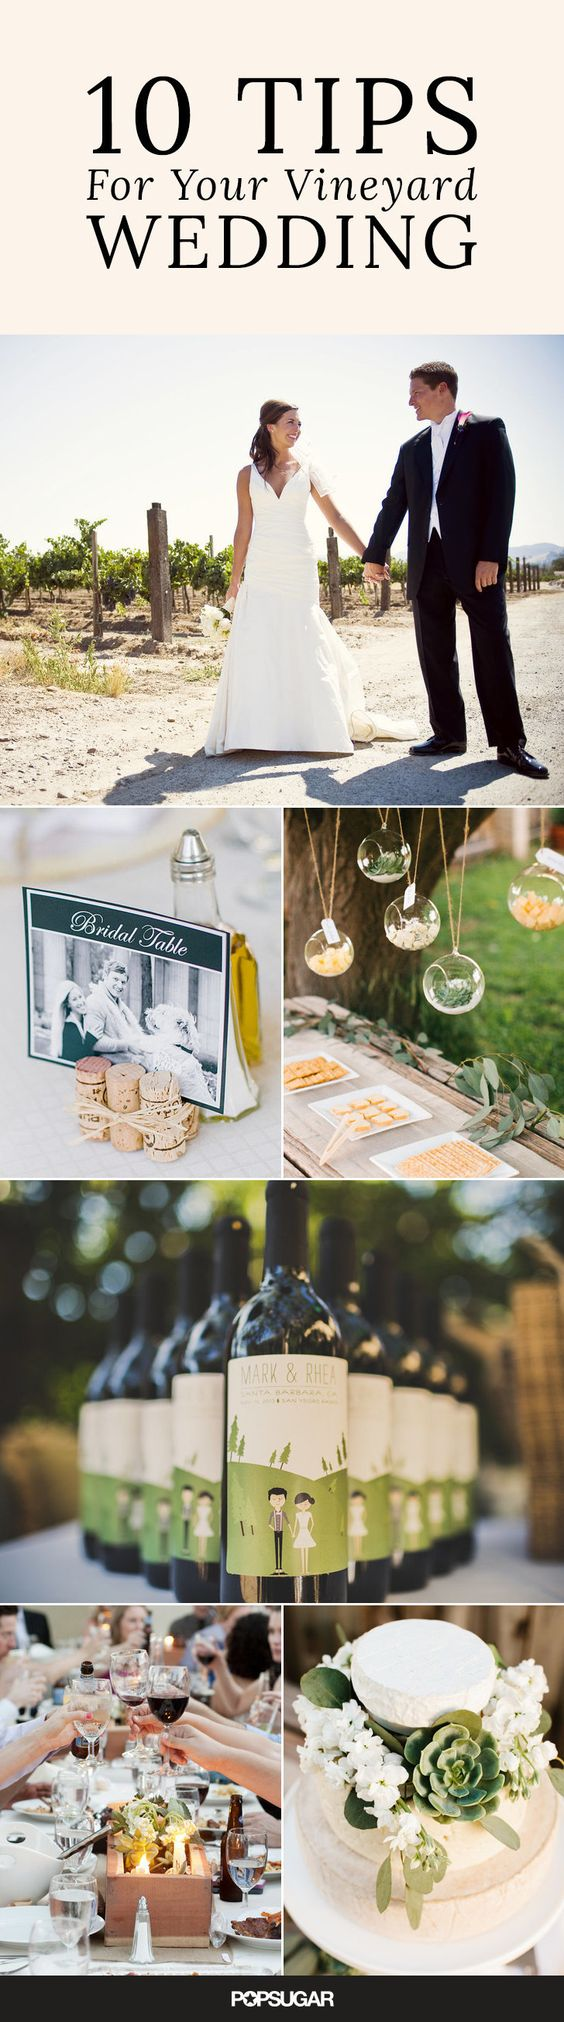 How to do a vineyard wedding the classy way.